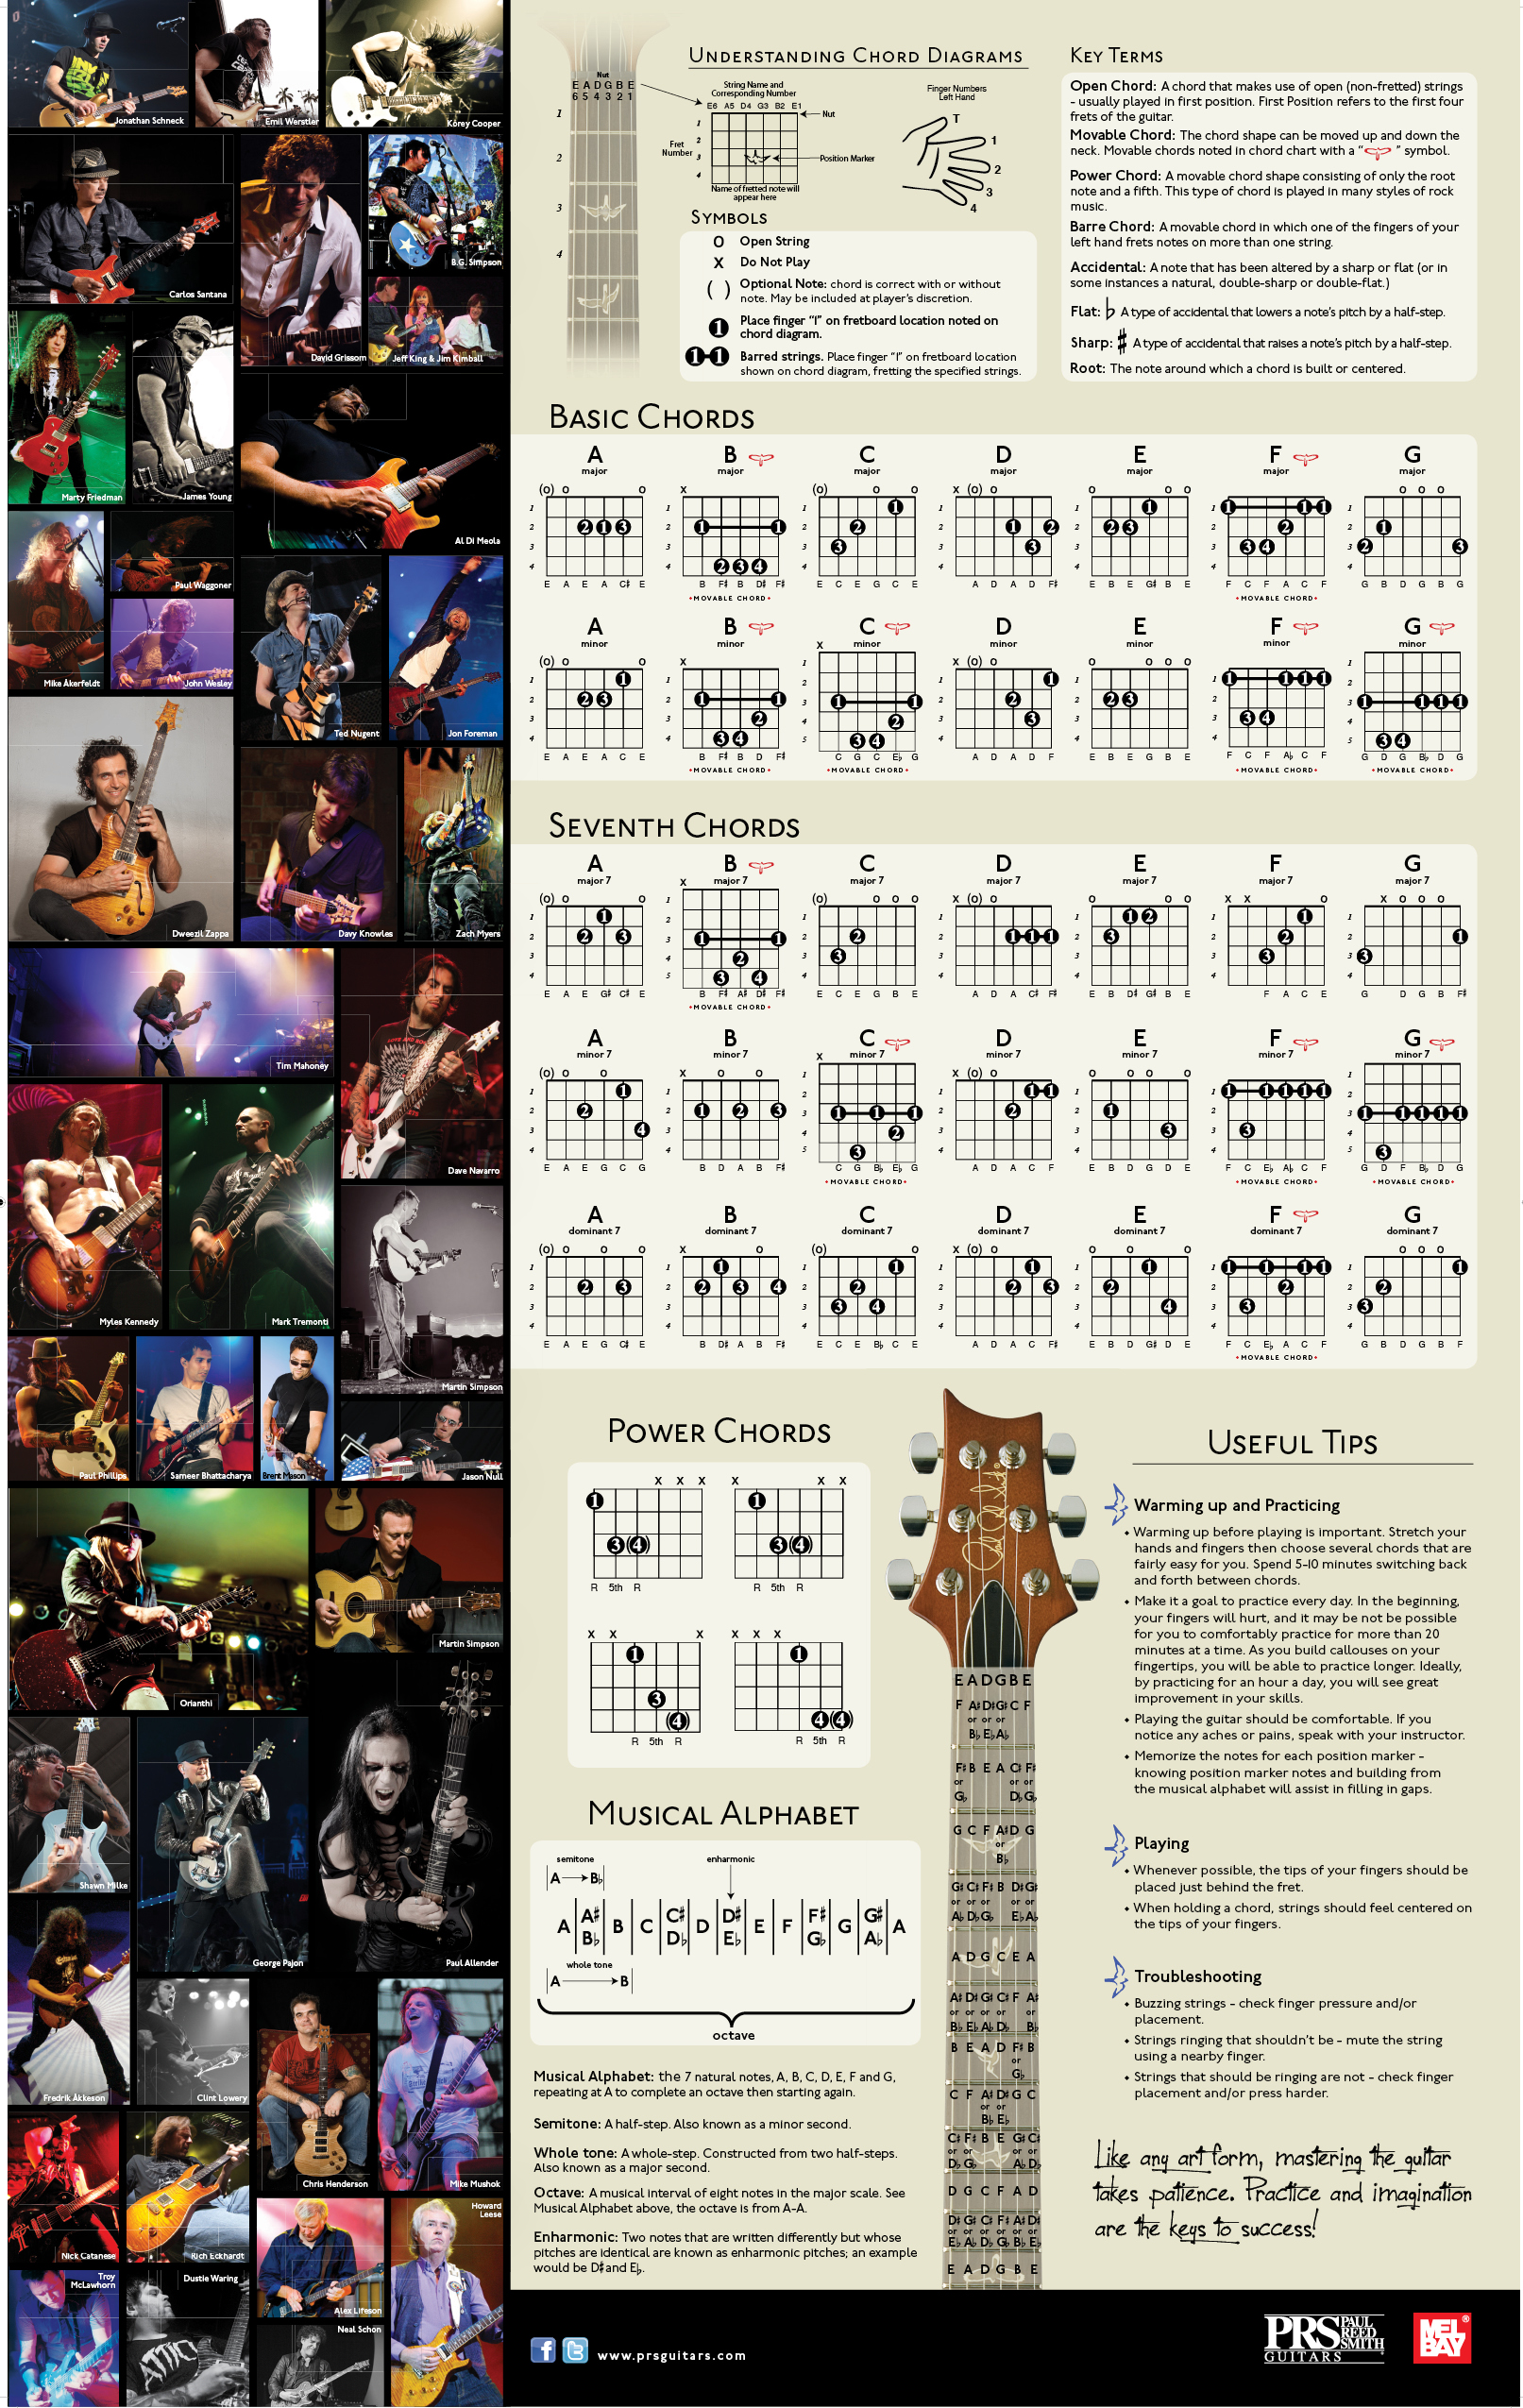 Guitar Chord Chart Poster Related Keywords u0026 Suggestions - Guitar Chord Chart Poster Long Tail ...